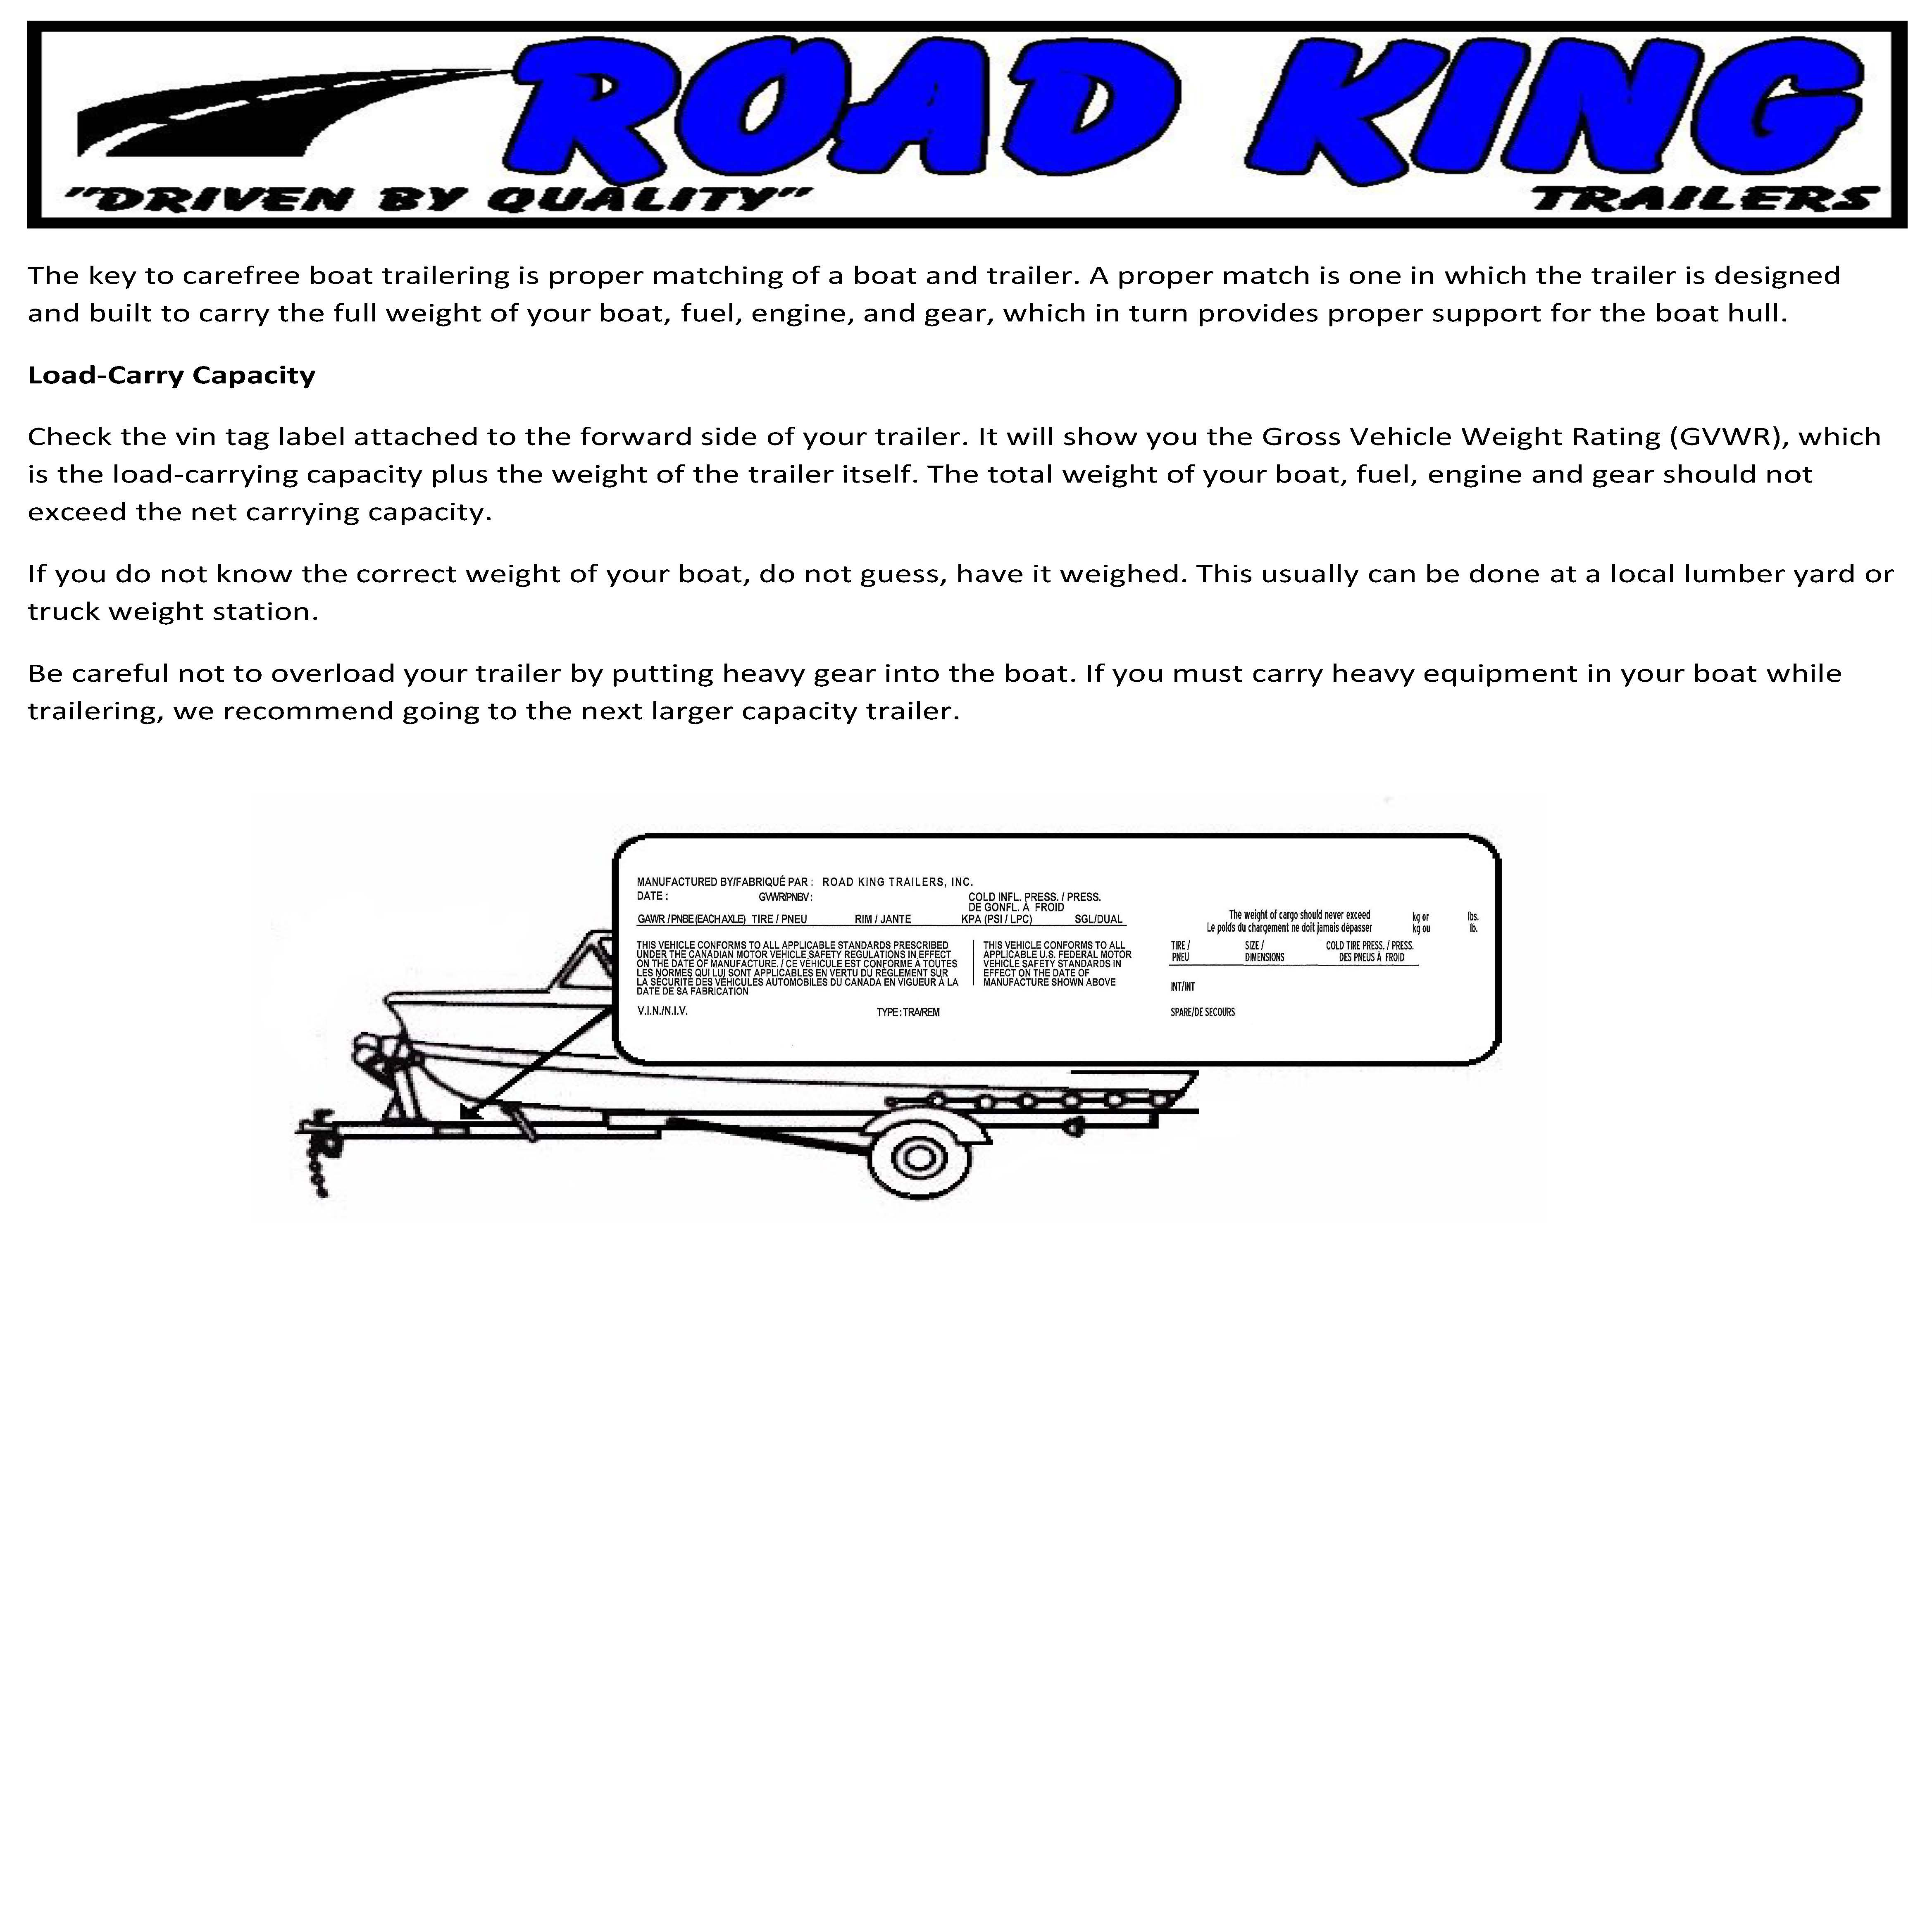 100 amp homeline load center wiring diagram load king wiring diagram road king trailer wiring diagram | wiring library #3